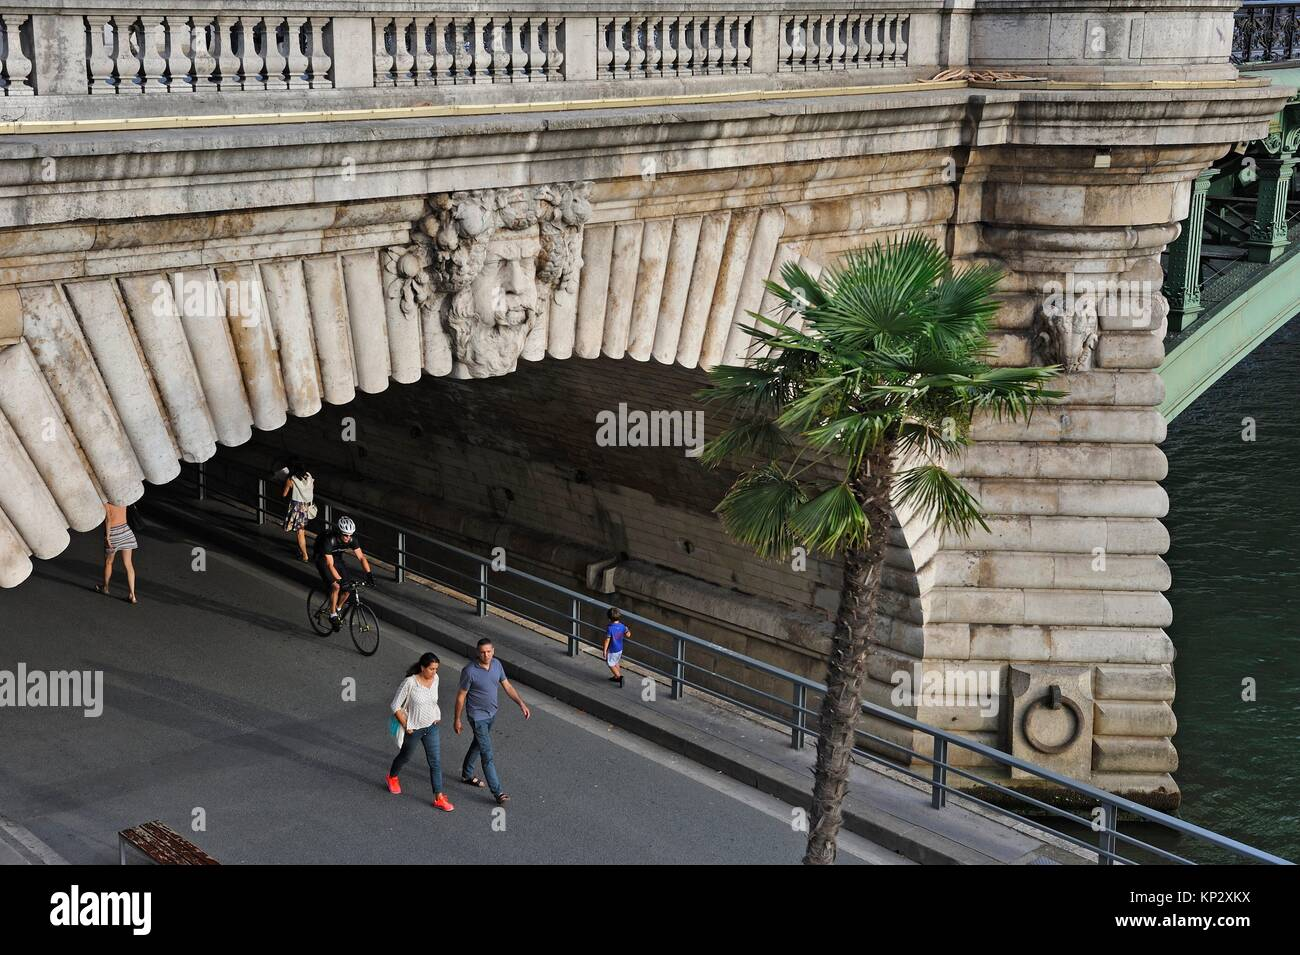 Notre-Dame bridge pier above the pedestrianized riverside expressway, Paris, France, Europe. - Stock Image